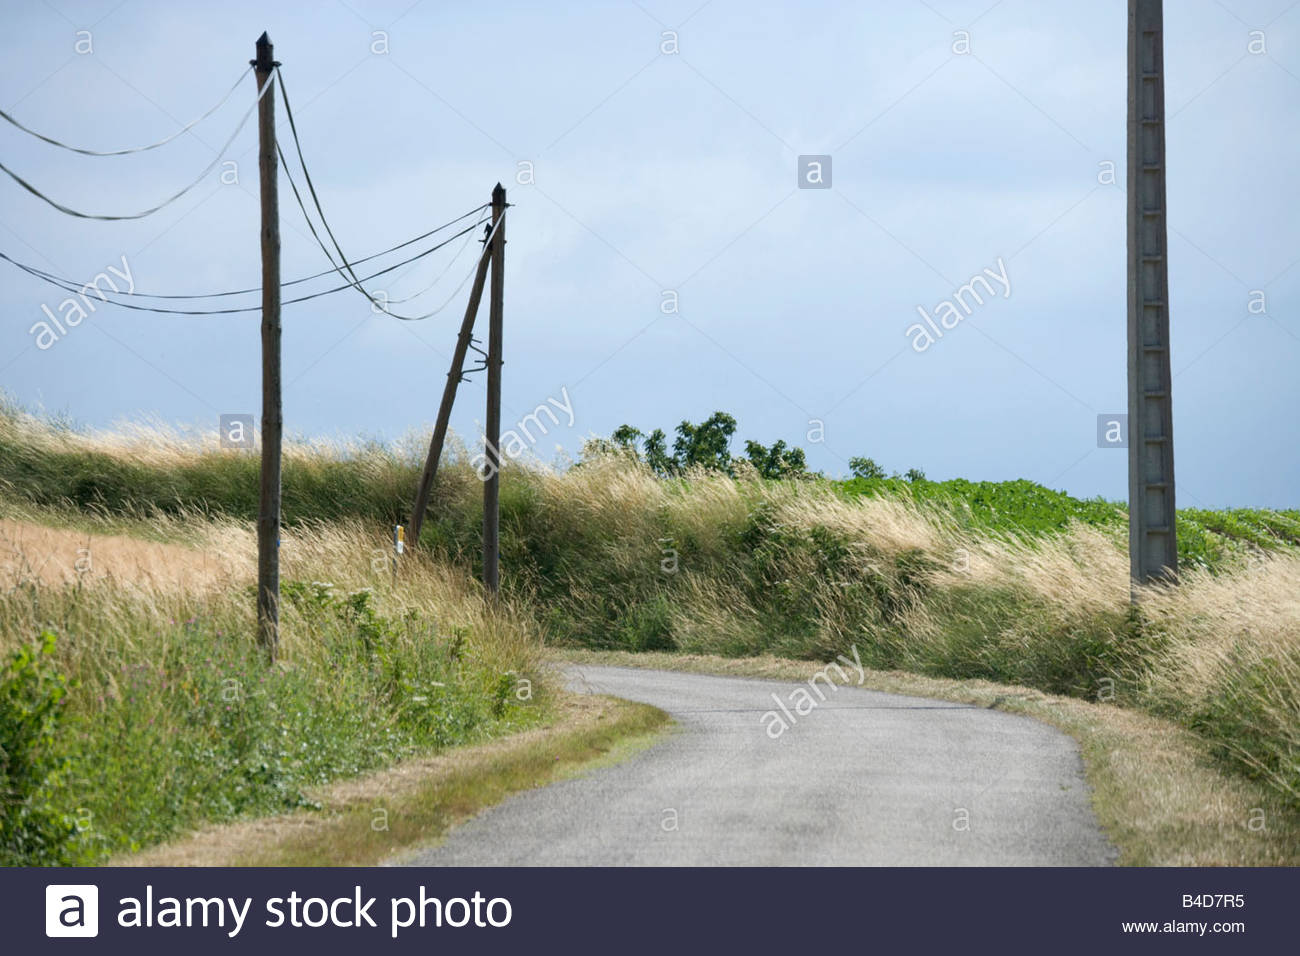 French Telephone Line Wiring Diagram Essig Outside Phone Jack Small Rural Countryside Road With Wires Stock Photo Box